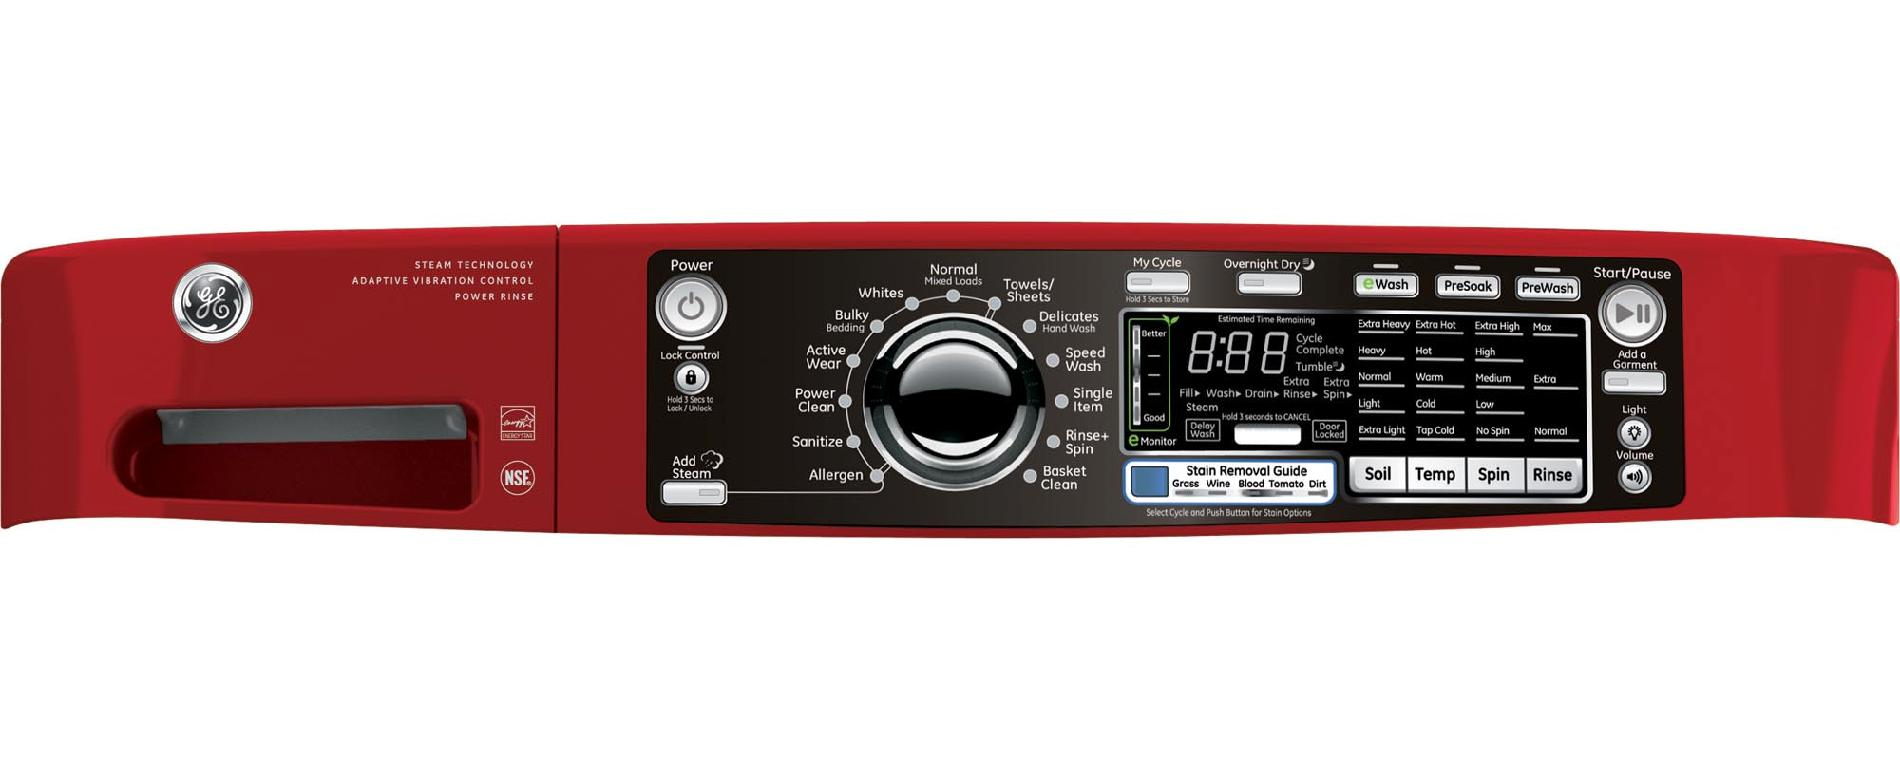 GE 4.8 cu. ft. RightHeight™ Design Front-Load Washer - Red